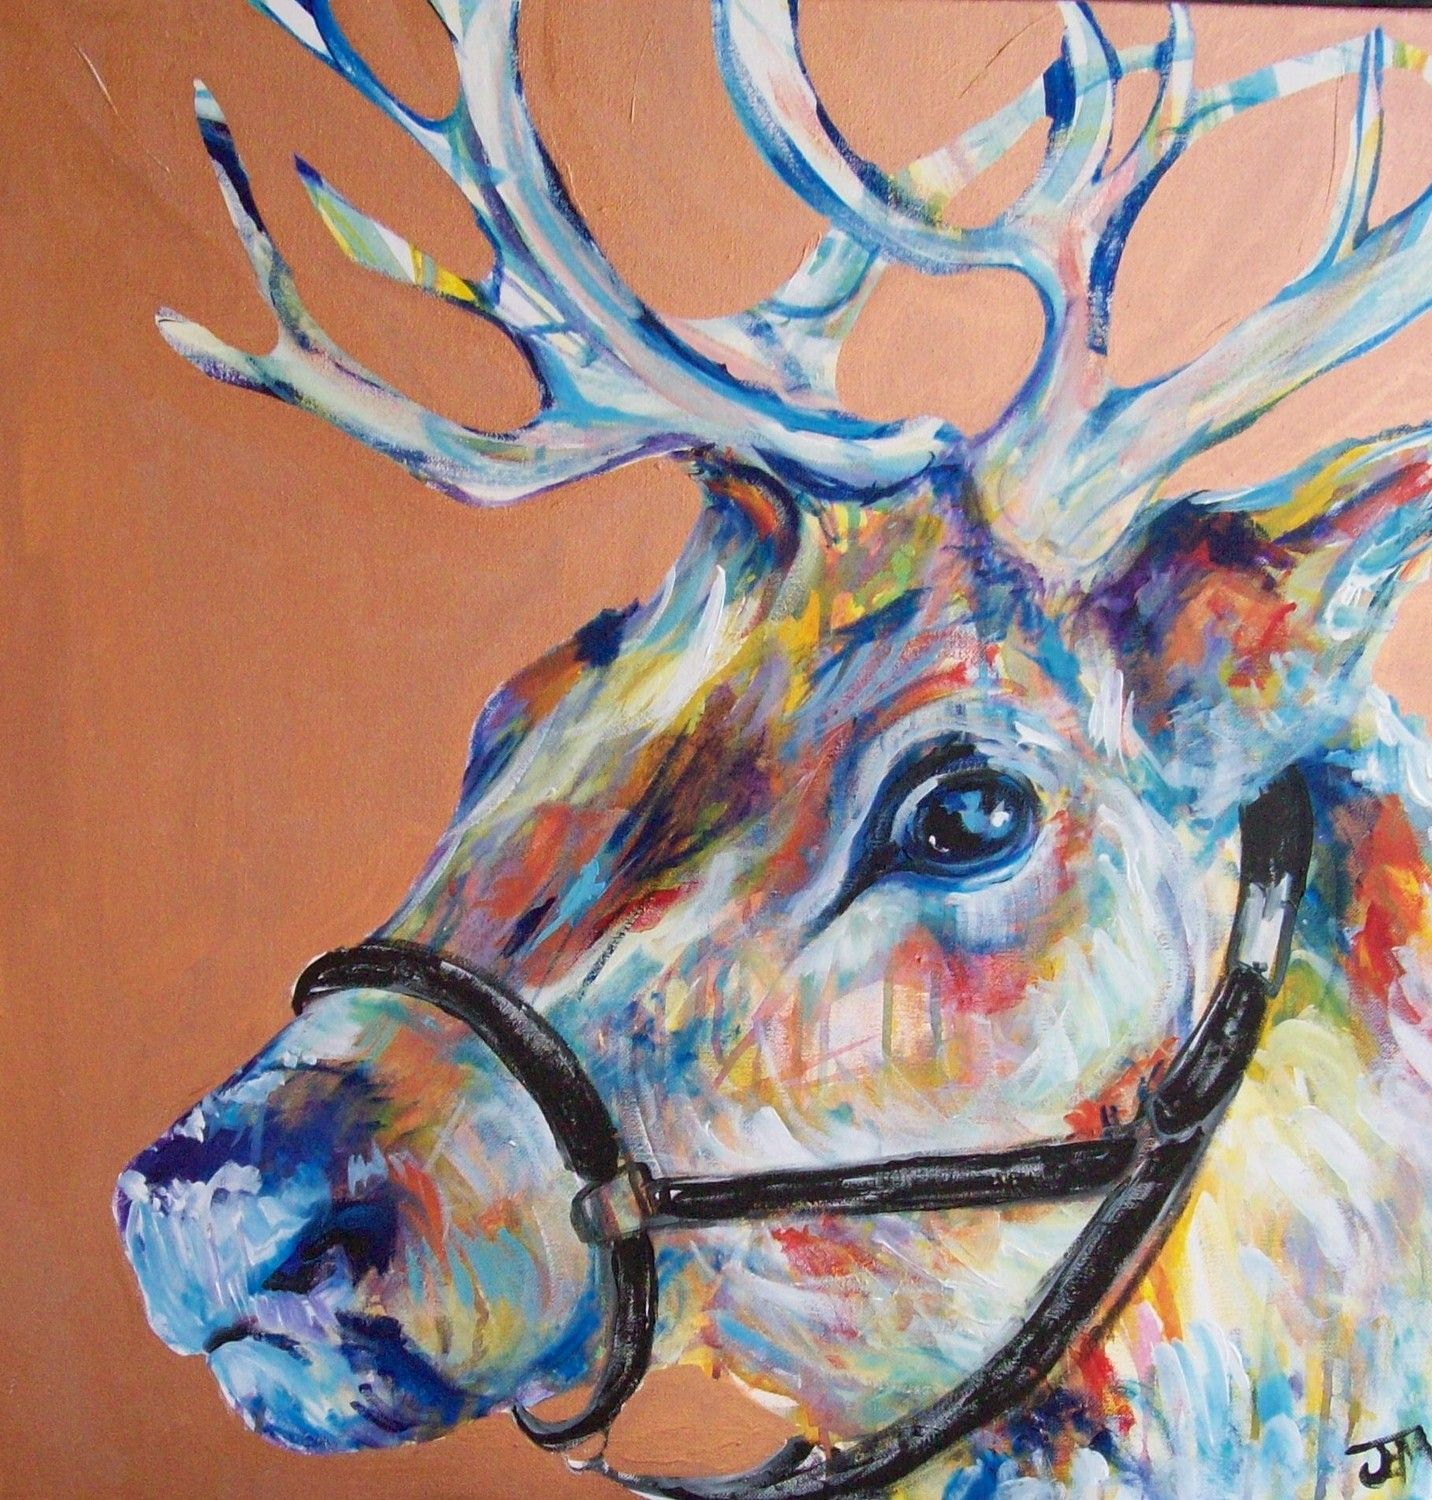 Rustic Canvas Painting Ideas Rustic Rudolf Original Painting 24x24 By Jennifer Moreman